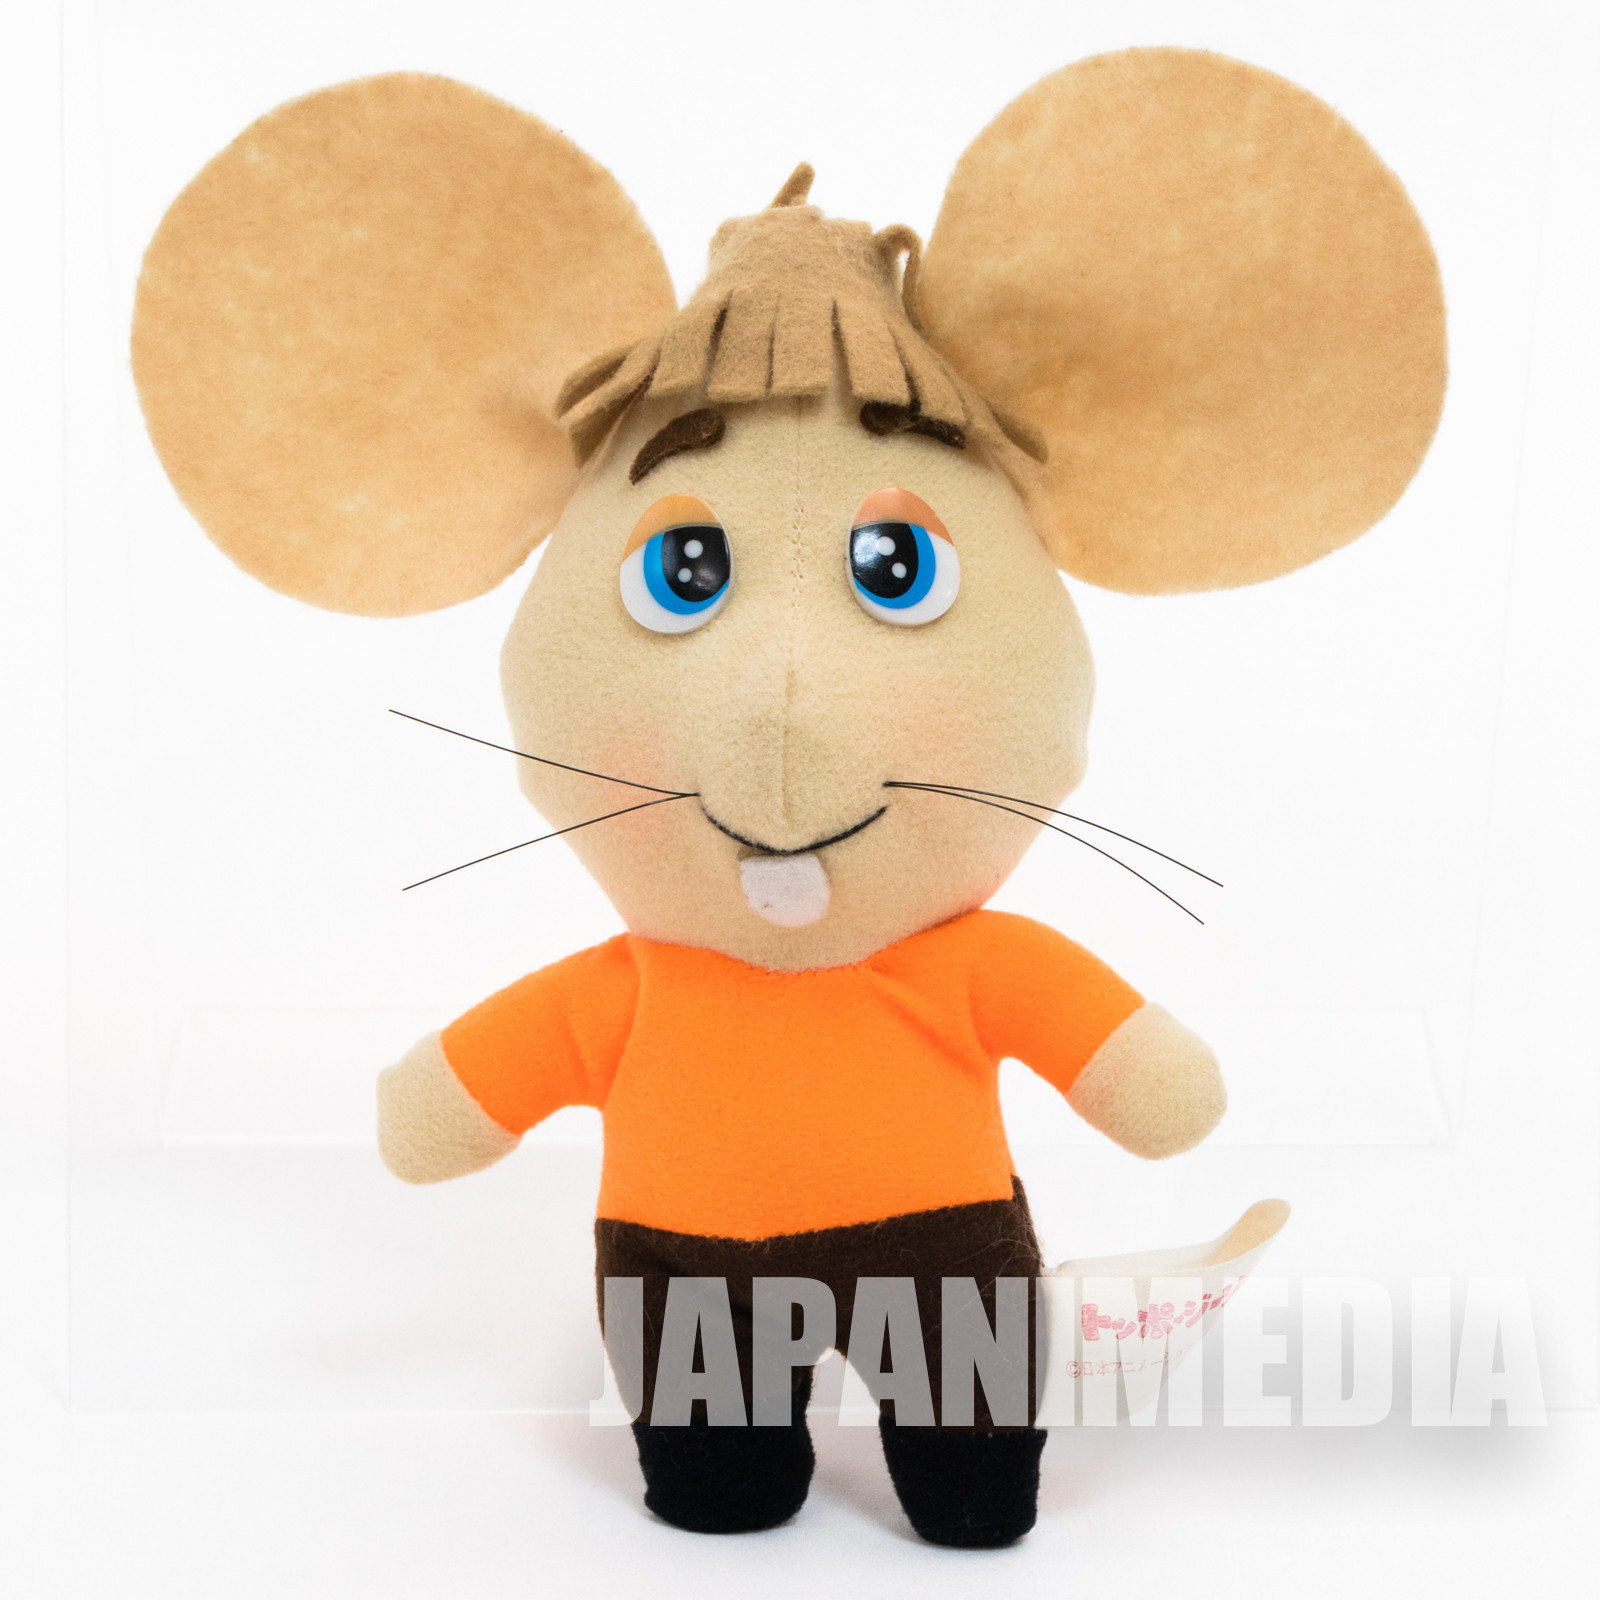 "Topo Gigio 7"" Plush Doll Orange JAPAN ANIME"